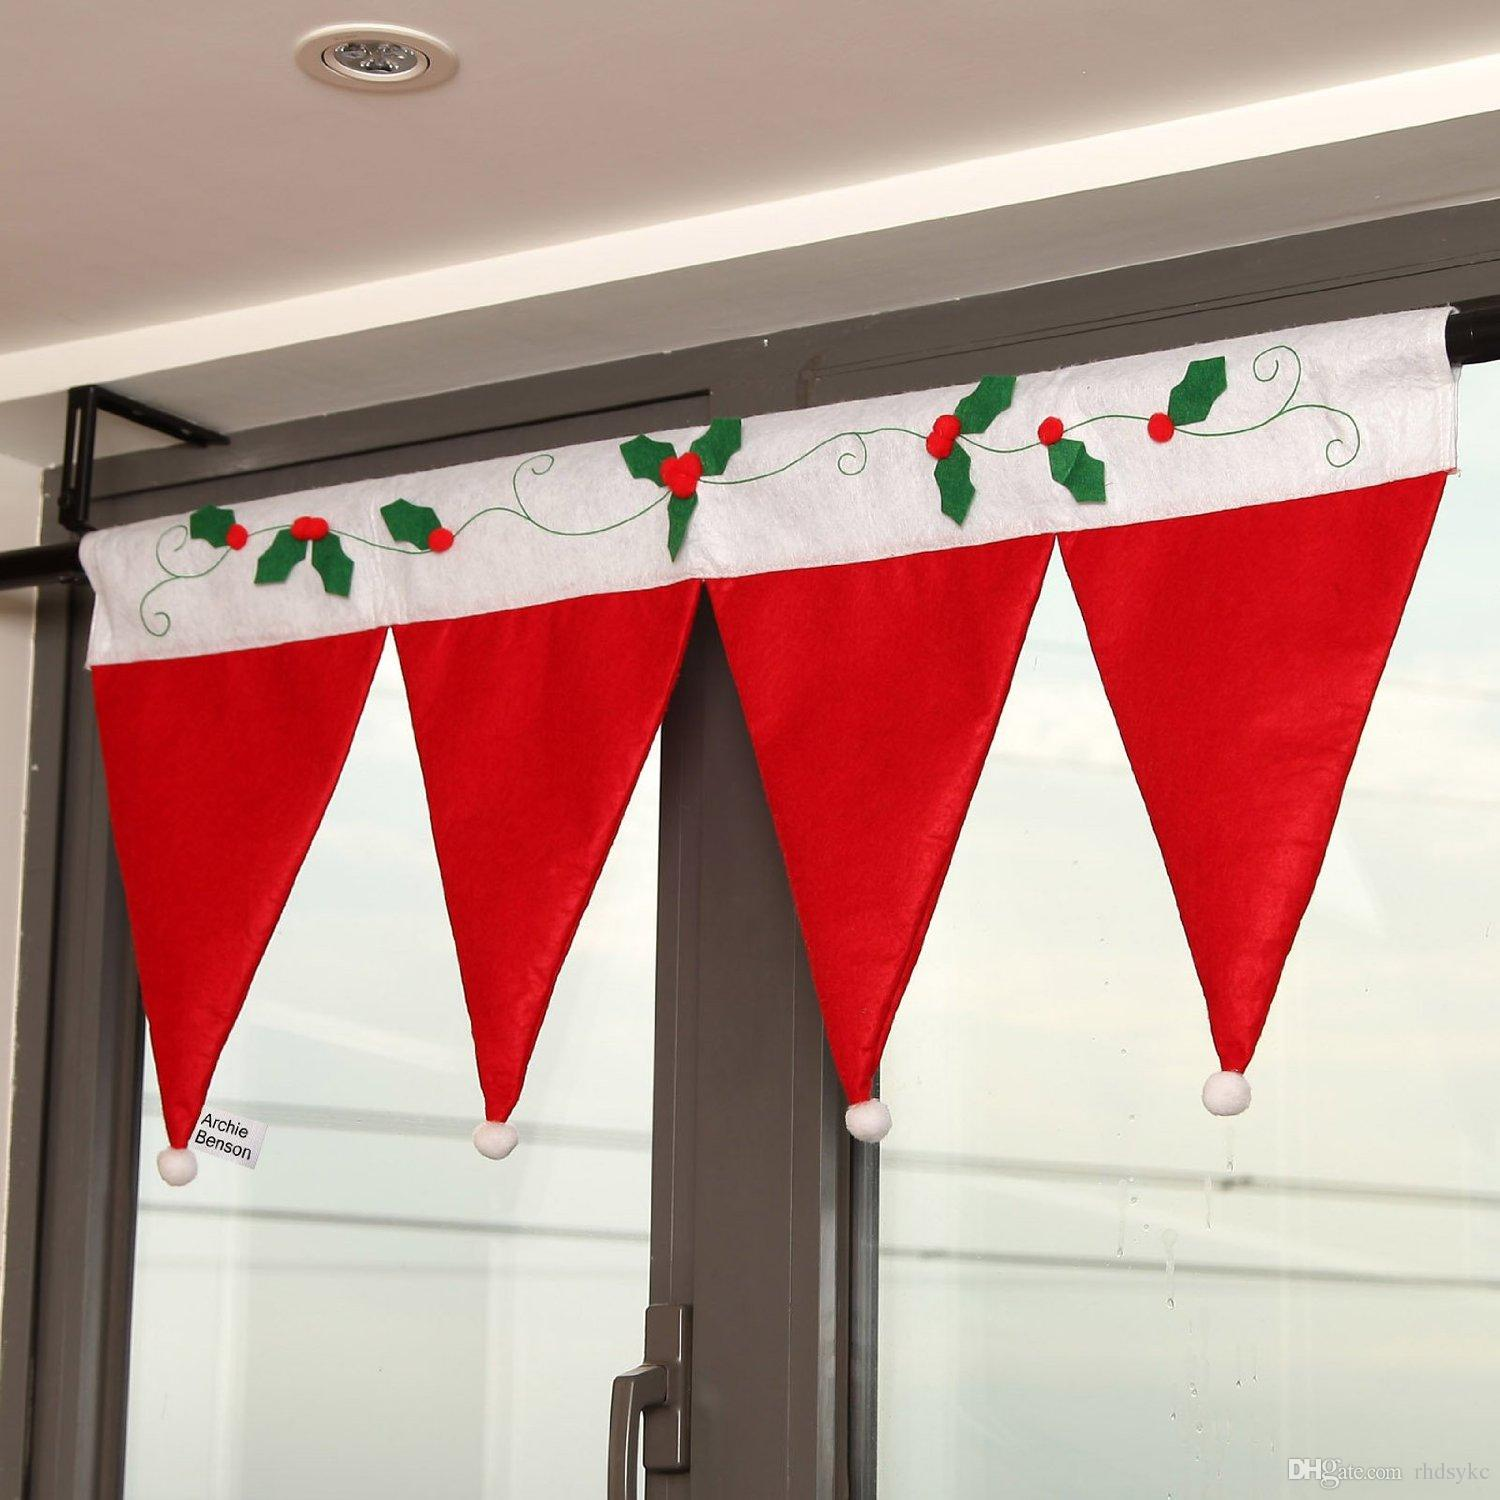 cheap valances curtains thrilling for silk countertops awesome tier miraculous valance gorgeous clearance transparent panel modern curtain inch size solid marvellous imposing of delicate pleasing kitchen cafe walls granite stunning red unbelie full windows panels